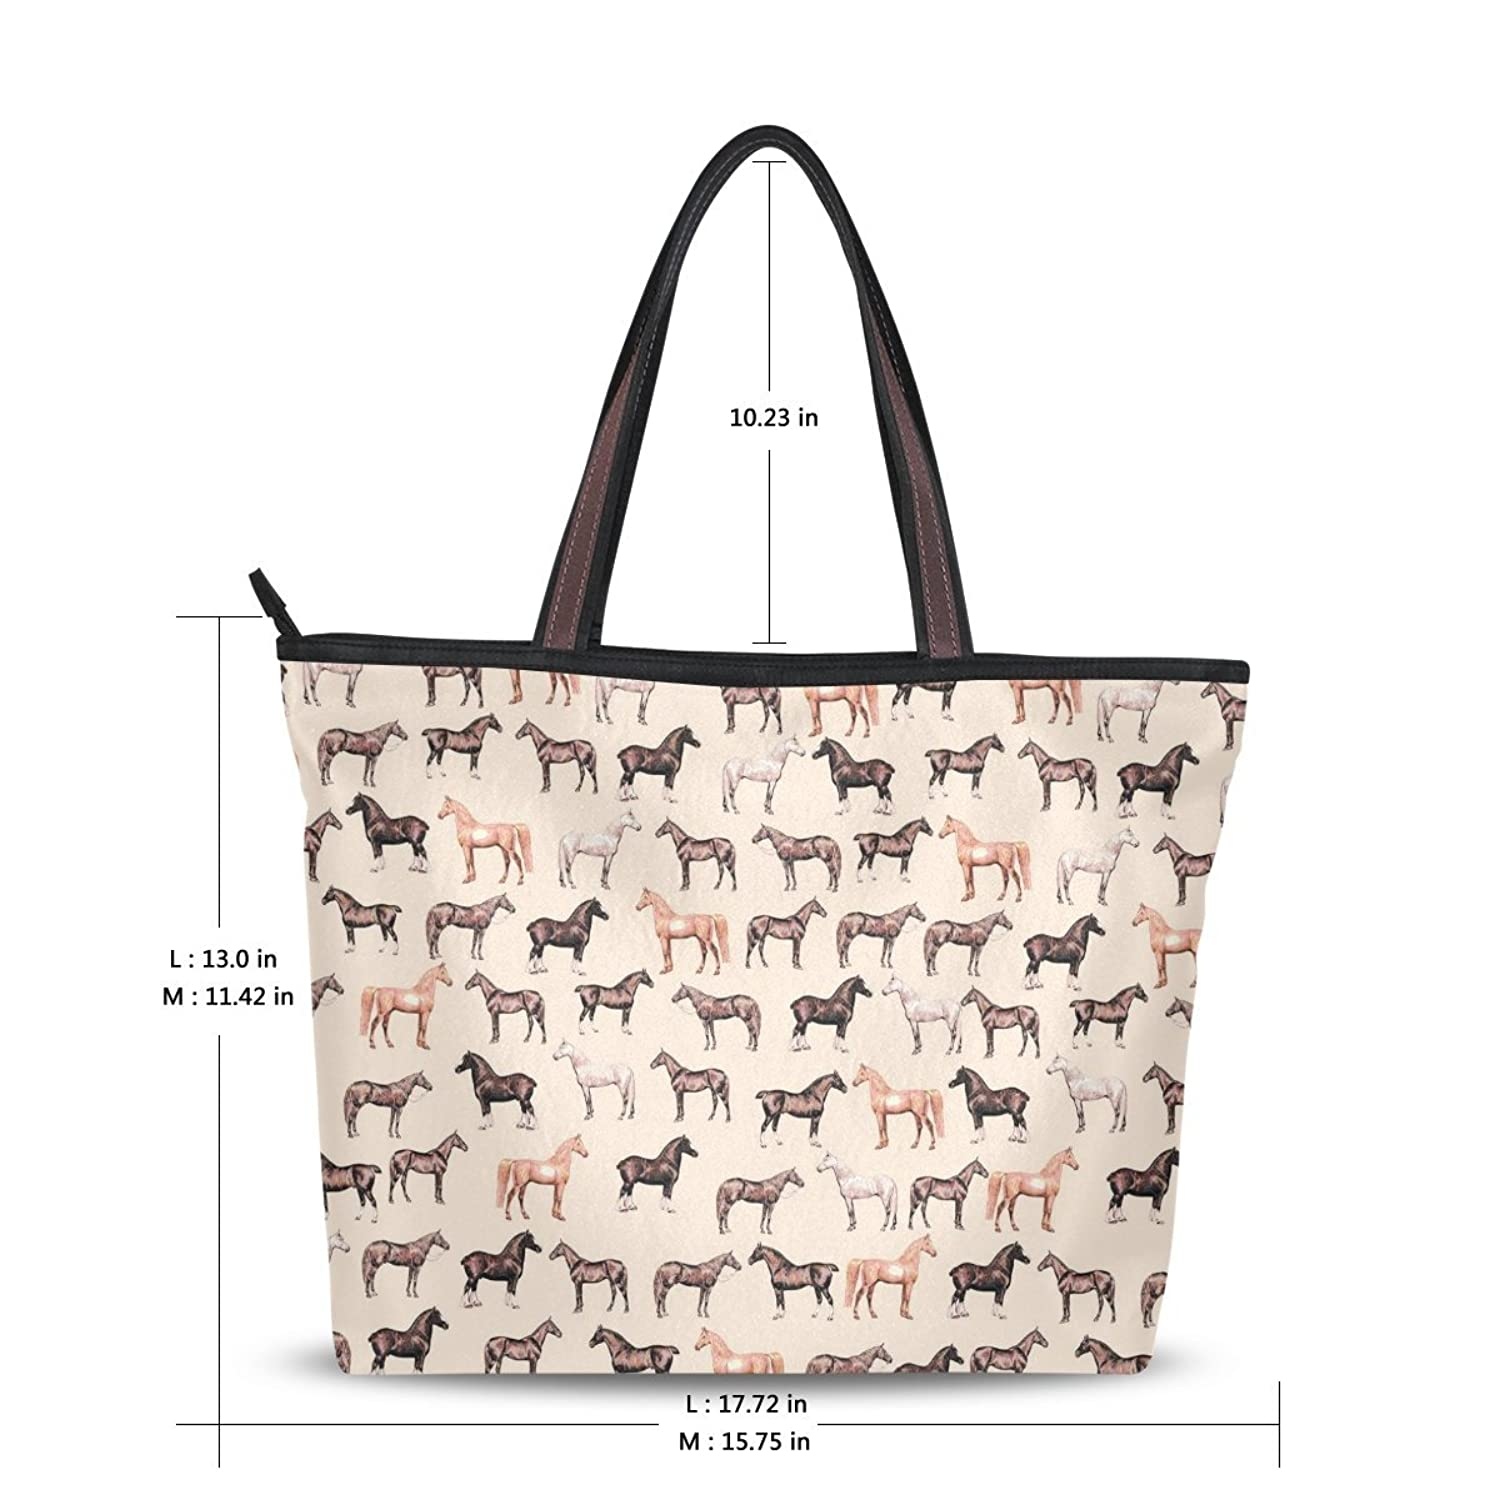 2016 Women's New Fashion Handbag Shoulder Bags,Cool Horses Pattern,Tote Bag